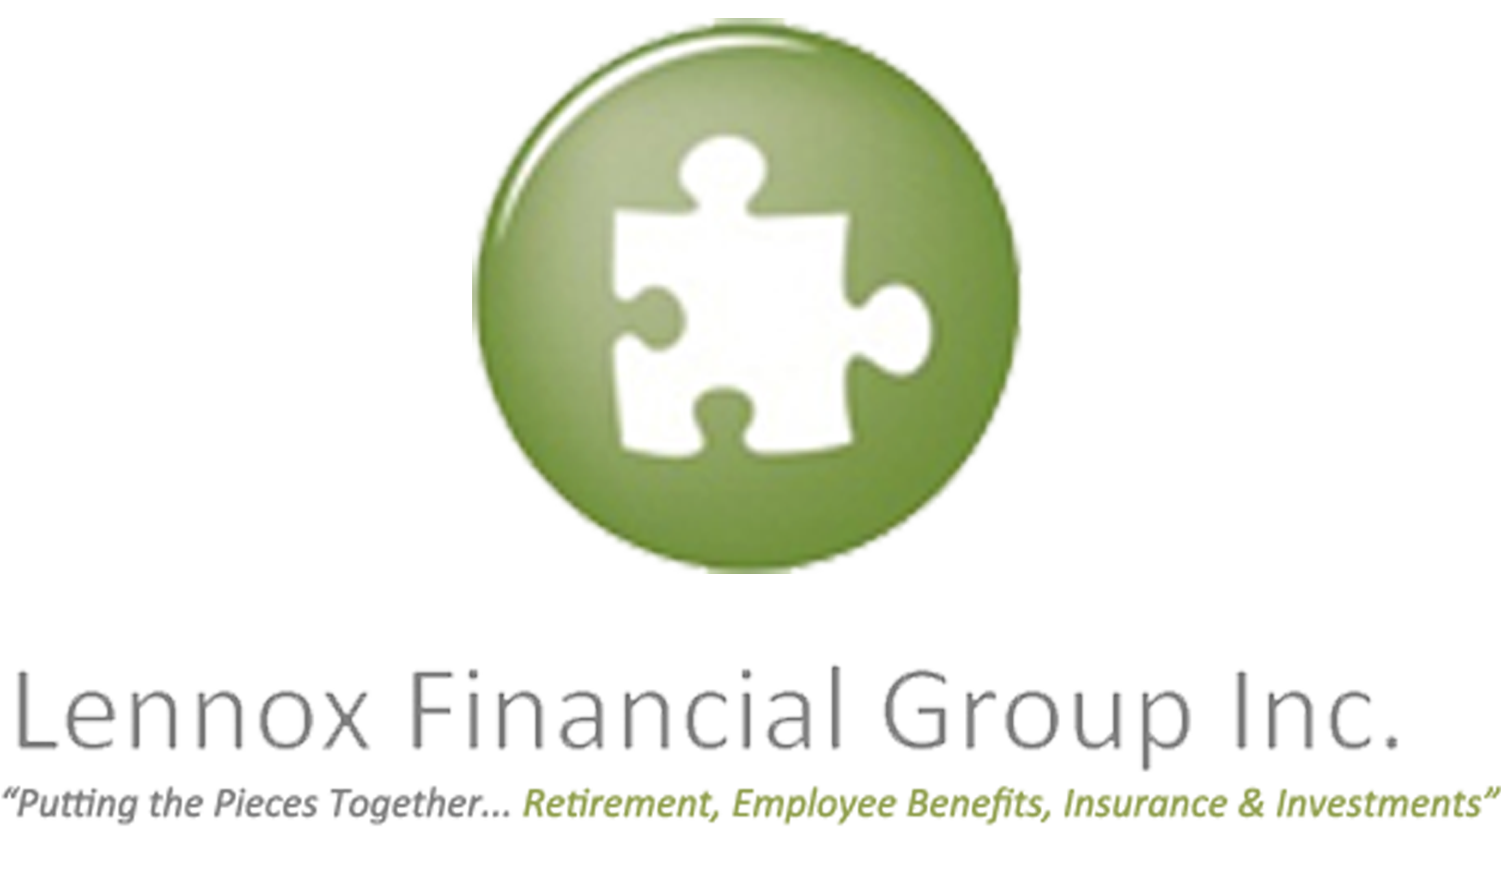 lennox-financial-logo